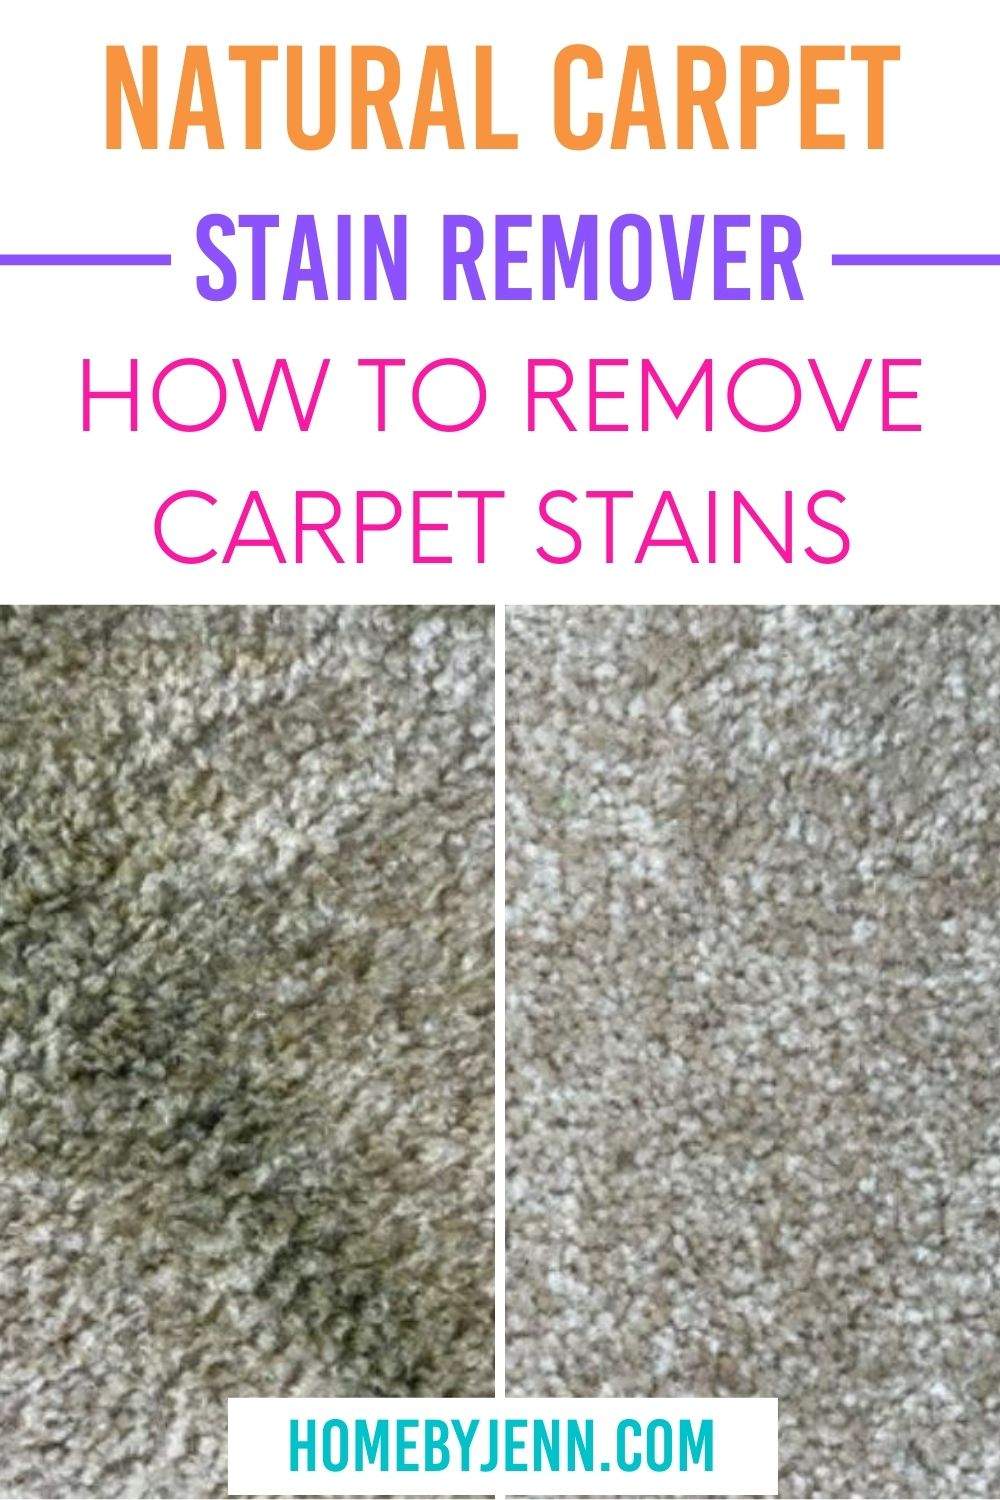 Natural Carpet Stain Remover that will get those stubborn stains out of your carpet in a hurry! A natural carpet cleaner that works. #cleaningtips #cleaningtipsandtricks #cleaninghacks #cleanhome #cleancarpet #cleaningtipsforcarpetstains #removecarpetstains via @homebyjenn